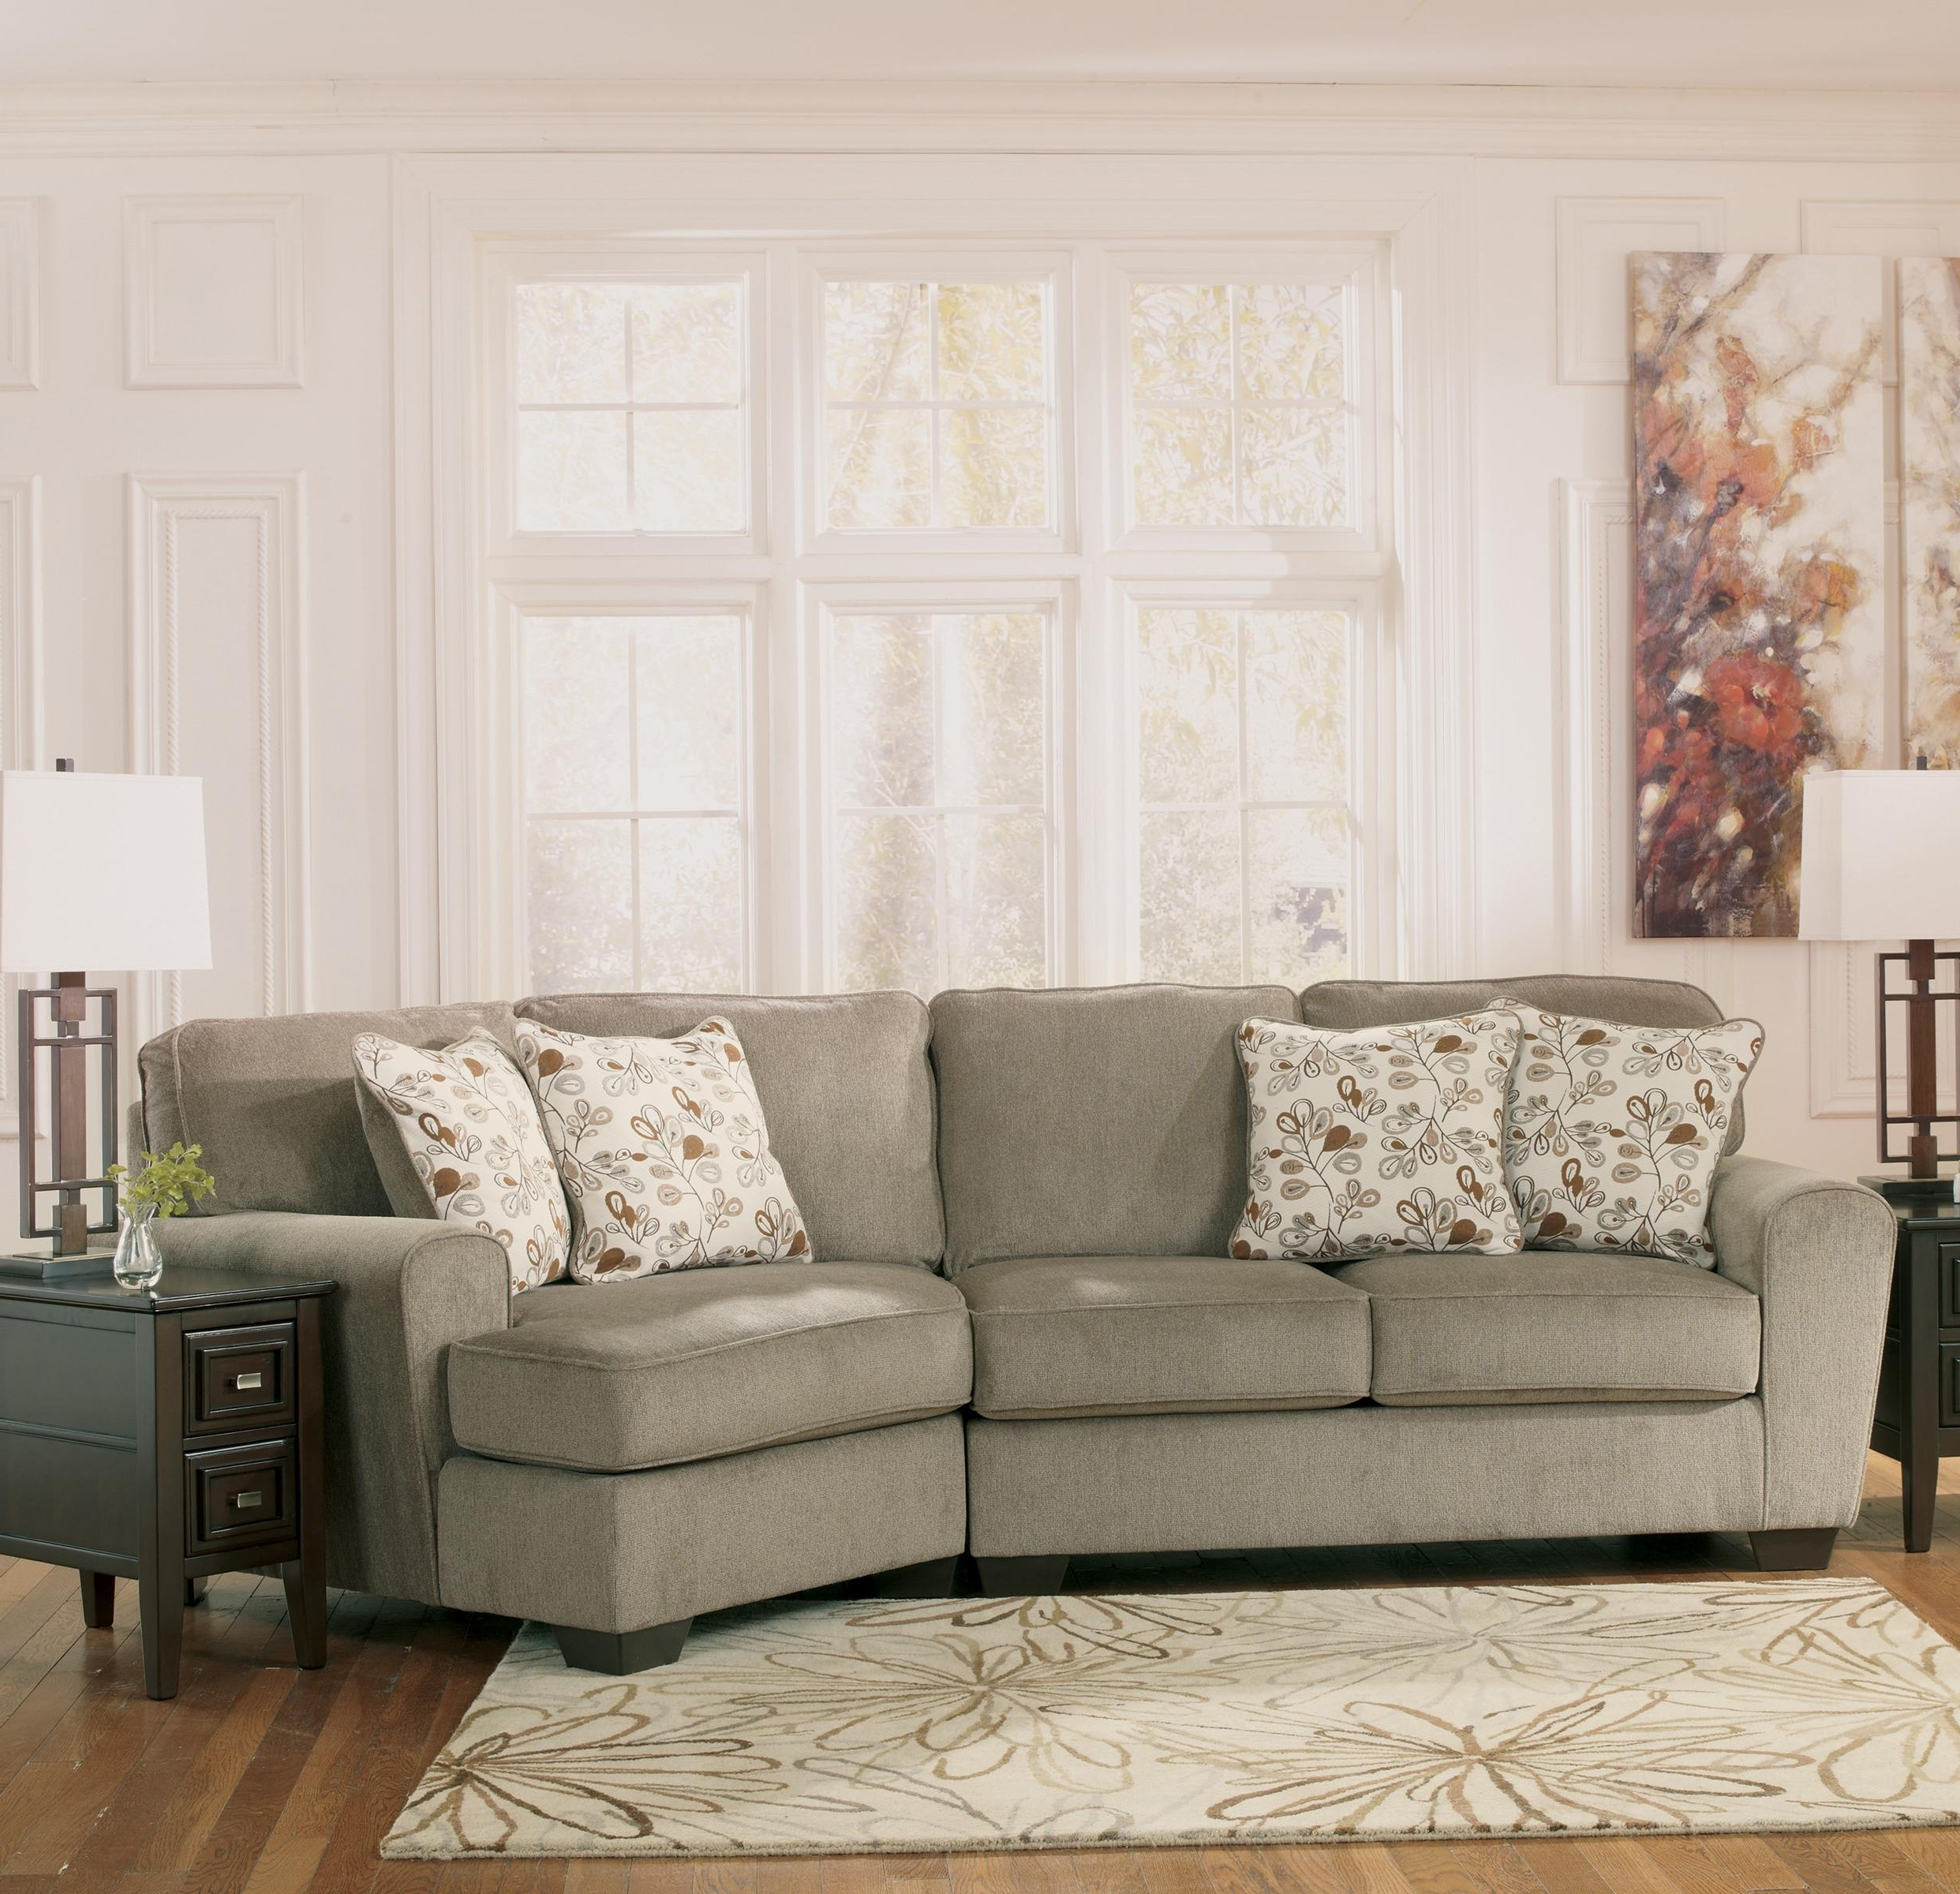 Ashley Furniture Patola Park – Patina 2 Piece Sectional With Right For Most Recently Released Cuddler Sectional Sofas (View 12 of 20)